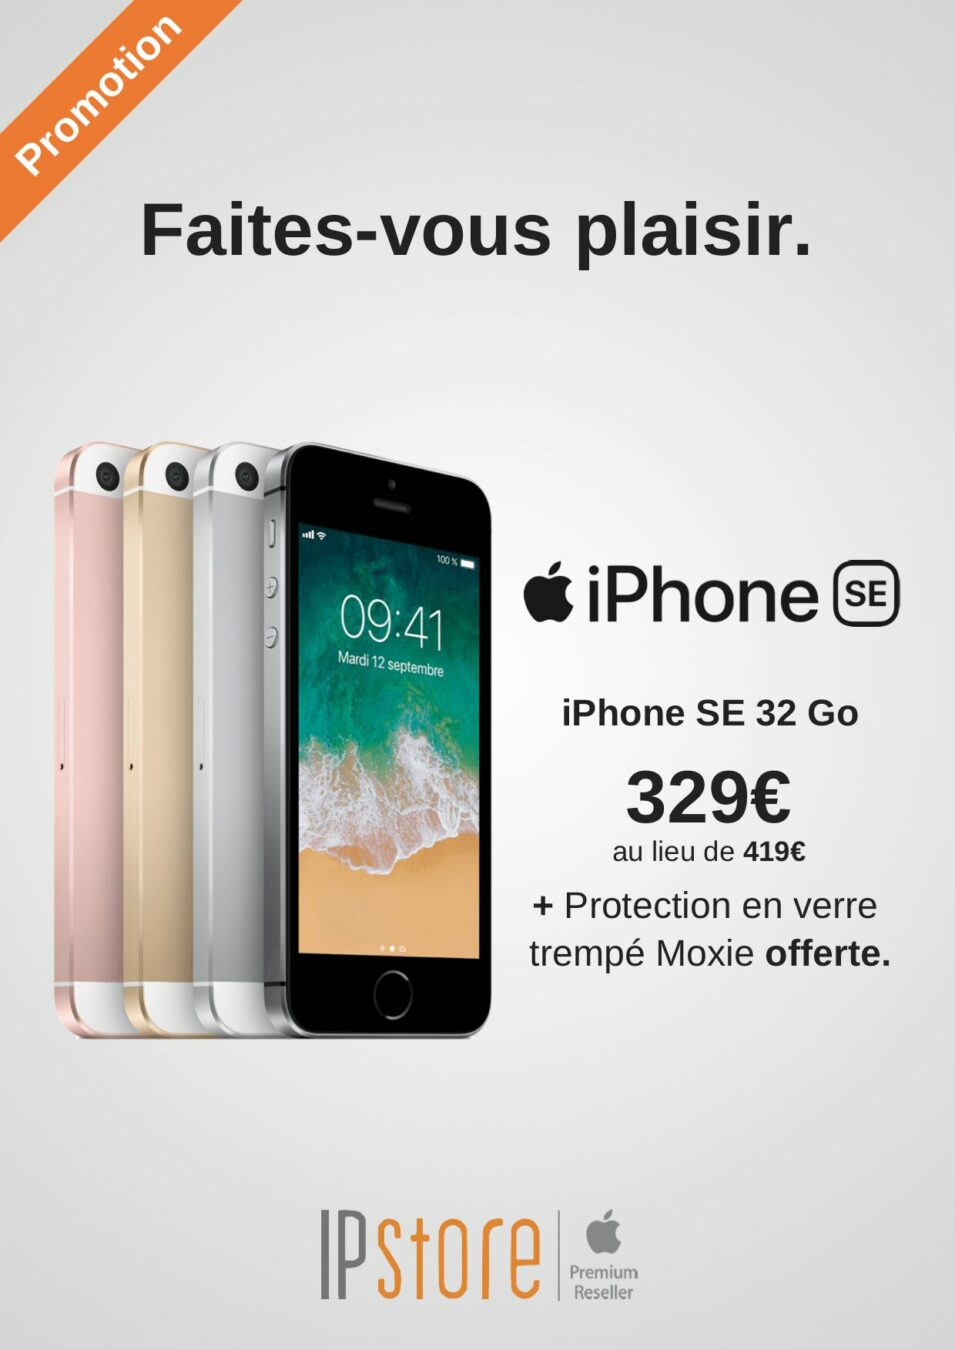 Photo of #BonPlan iPhone SE à 329€ au lieu de 419€ + verre trempé offert chez IP Store